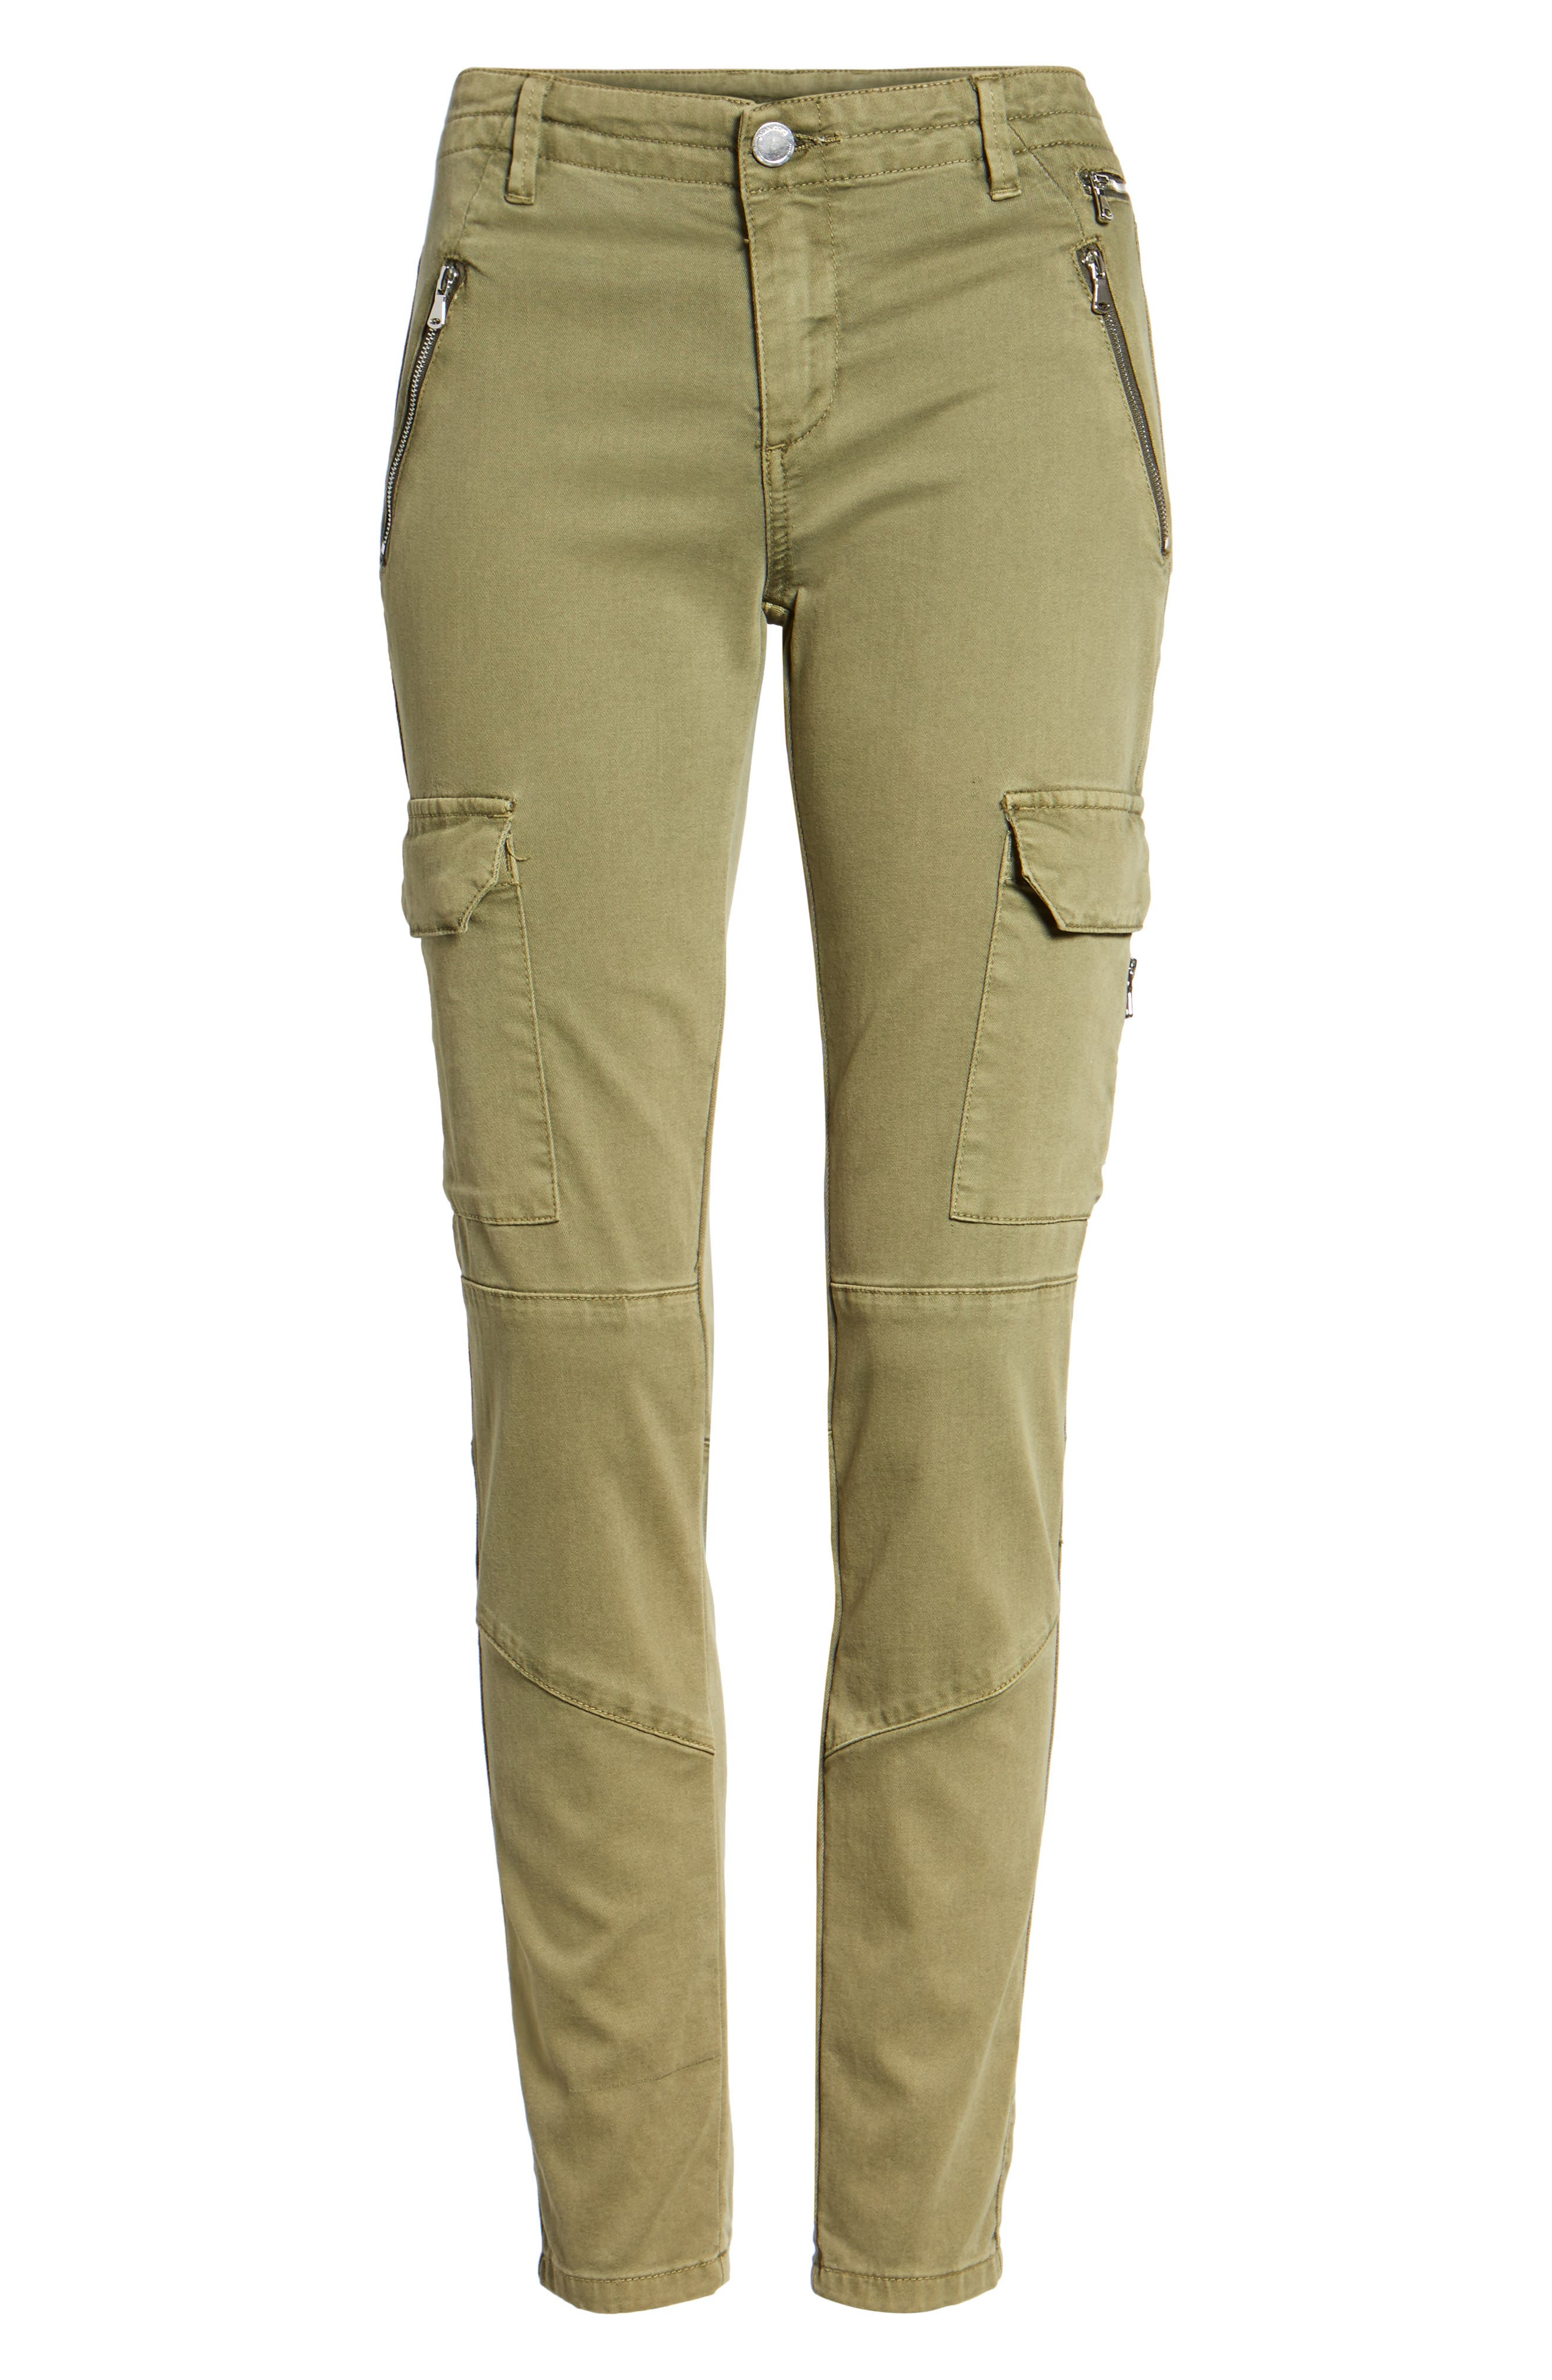 Skinny Cargo Pants,                             Alternate thumbnail 6, color,                             300